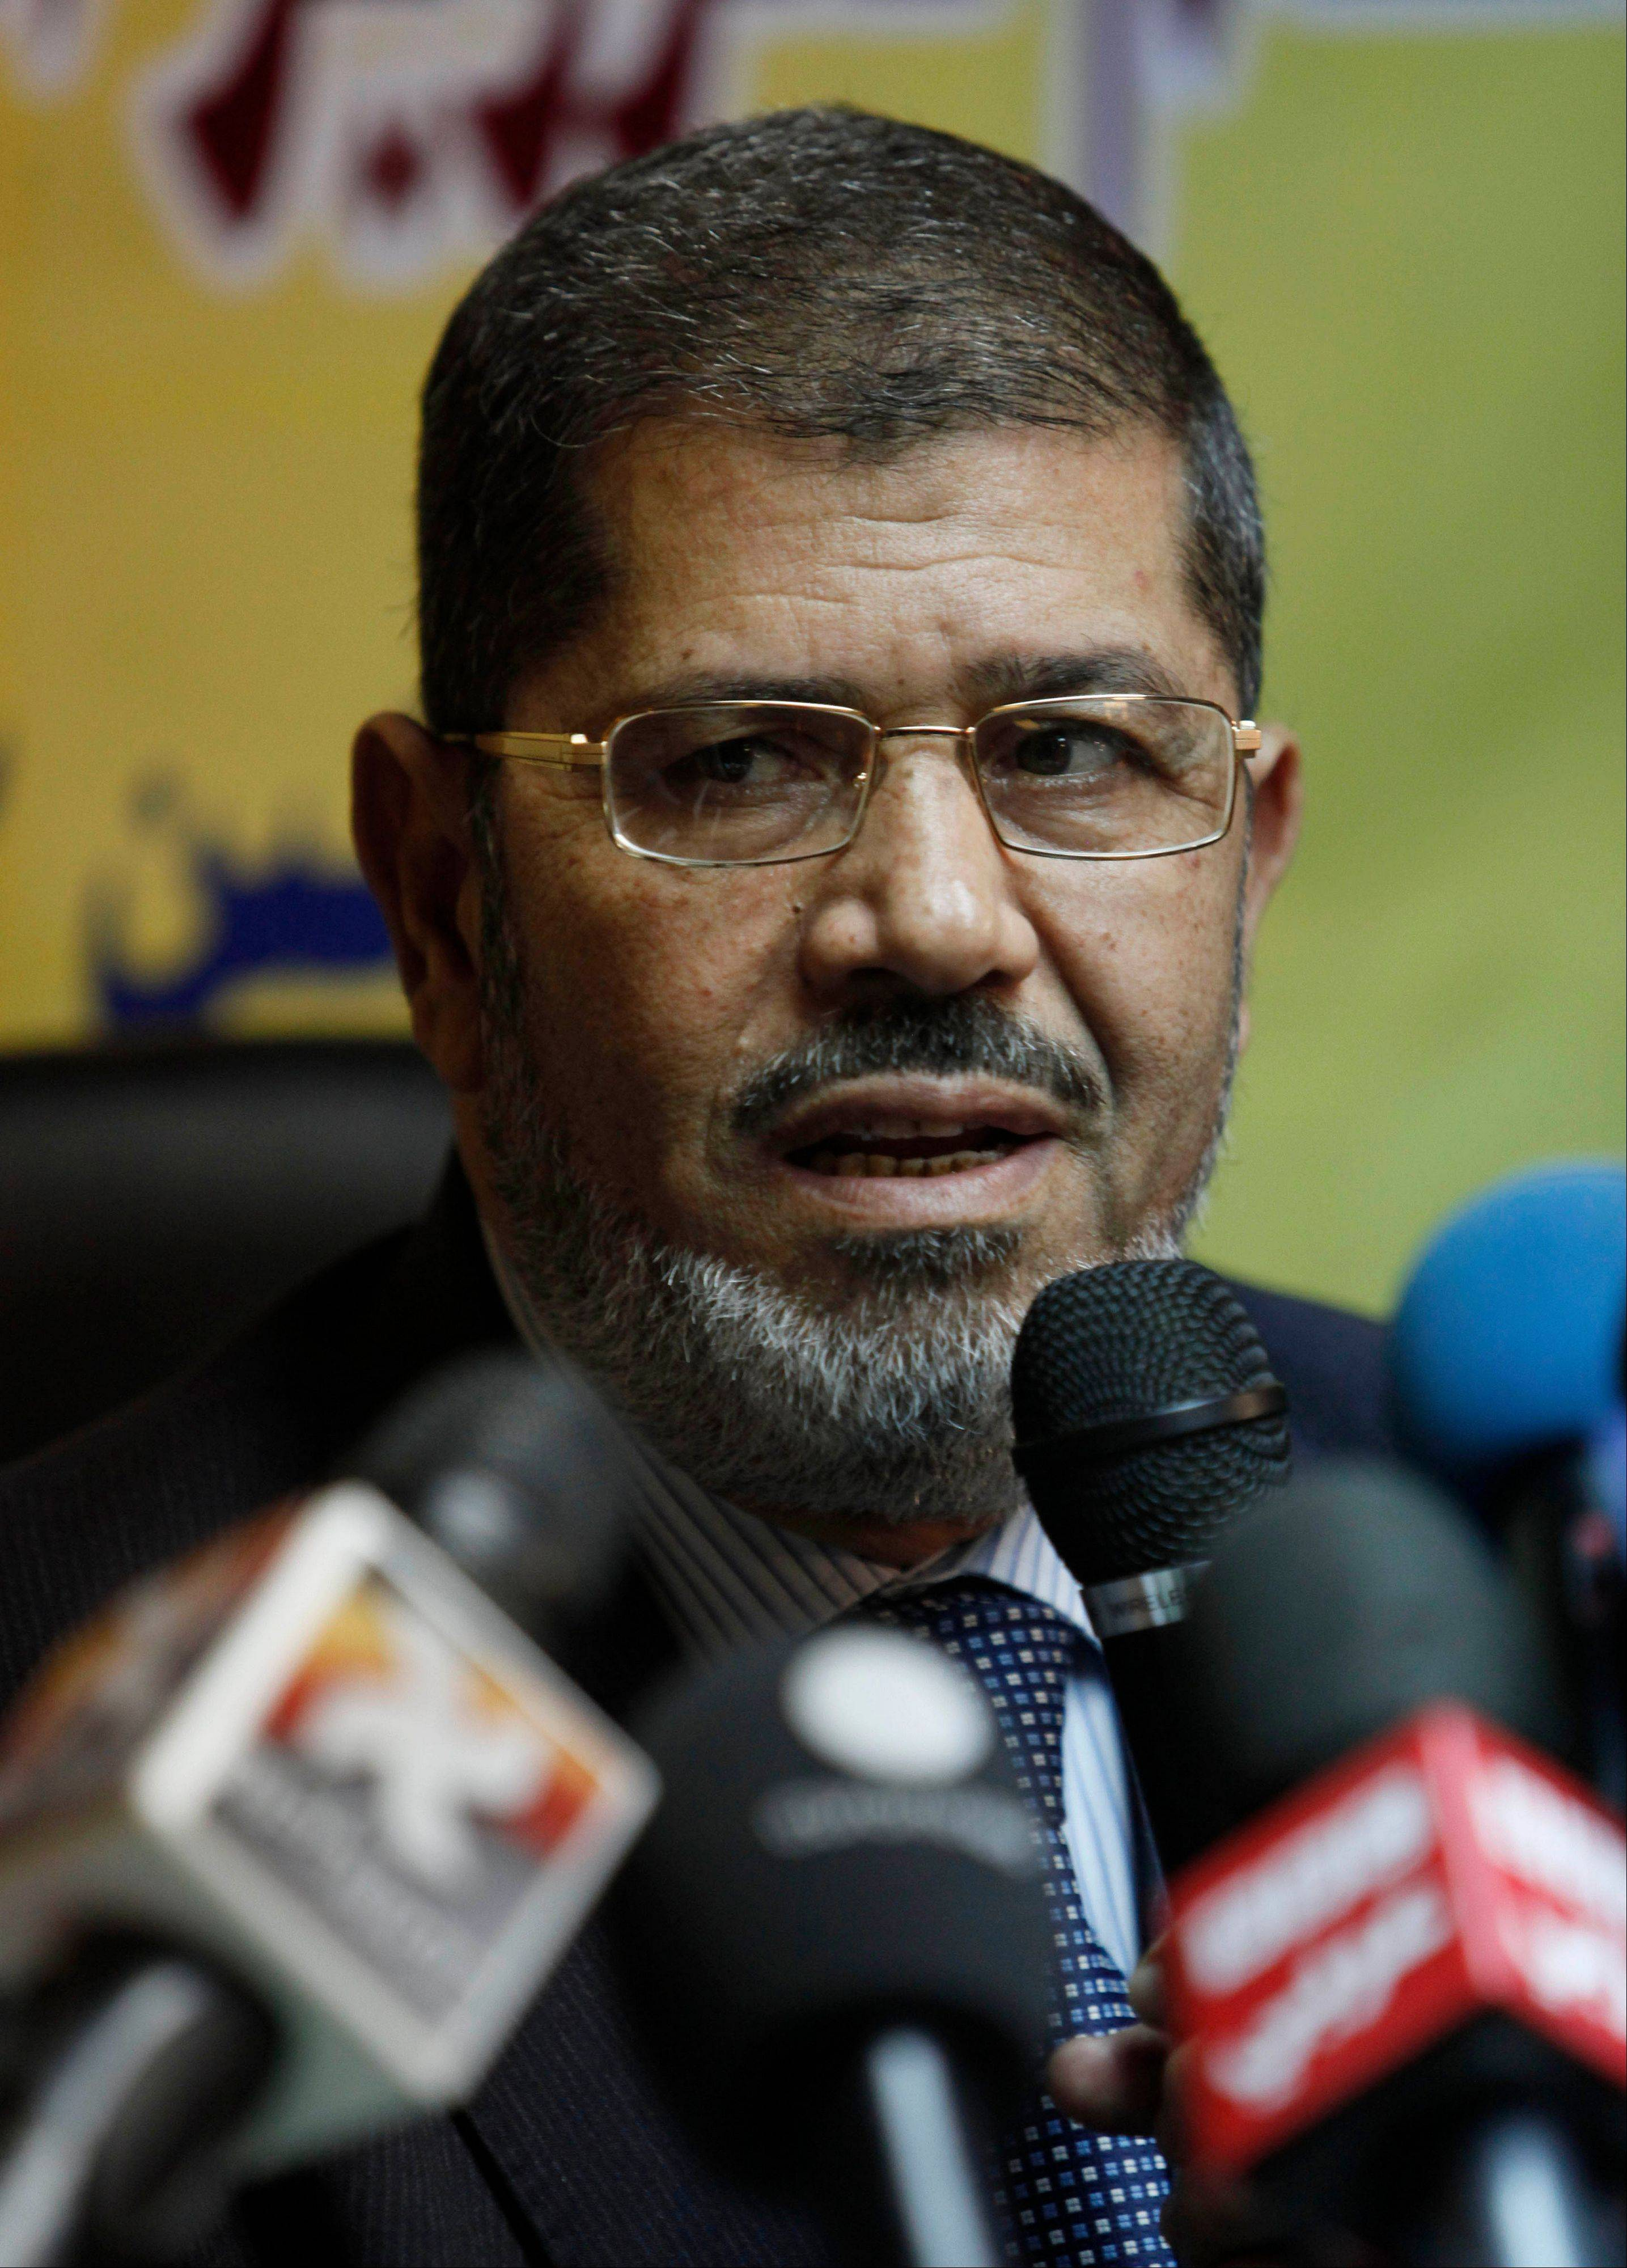 Egypt's top prosecutor has referred ousted Islamist President Mohammed Morsi to trial on charges of inciting the killing of opponents who were protesting outside his palace while he was in office.